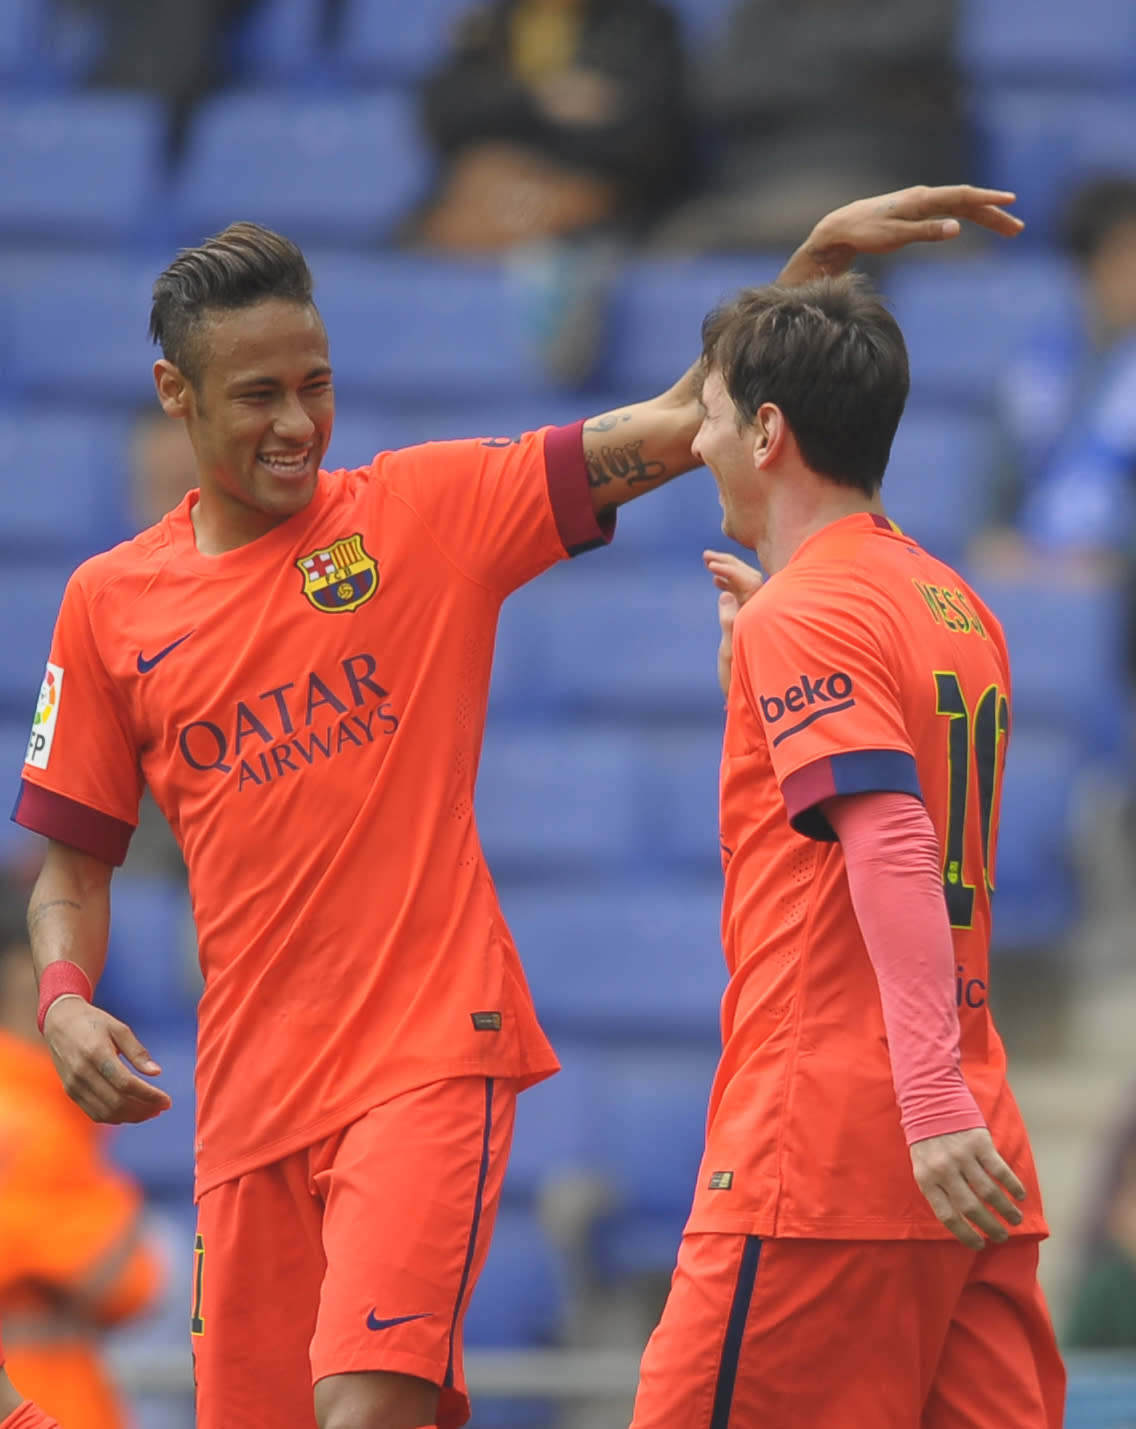 Barca stays in control in Spain; City grabs late winner